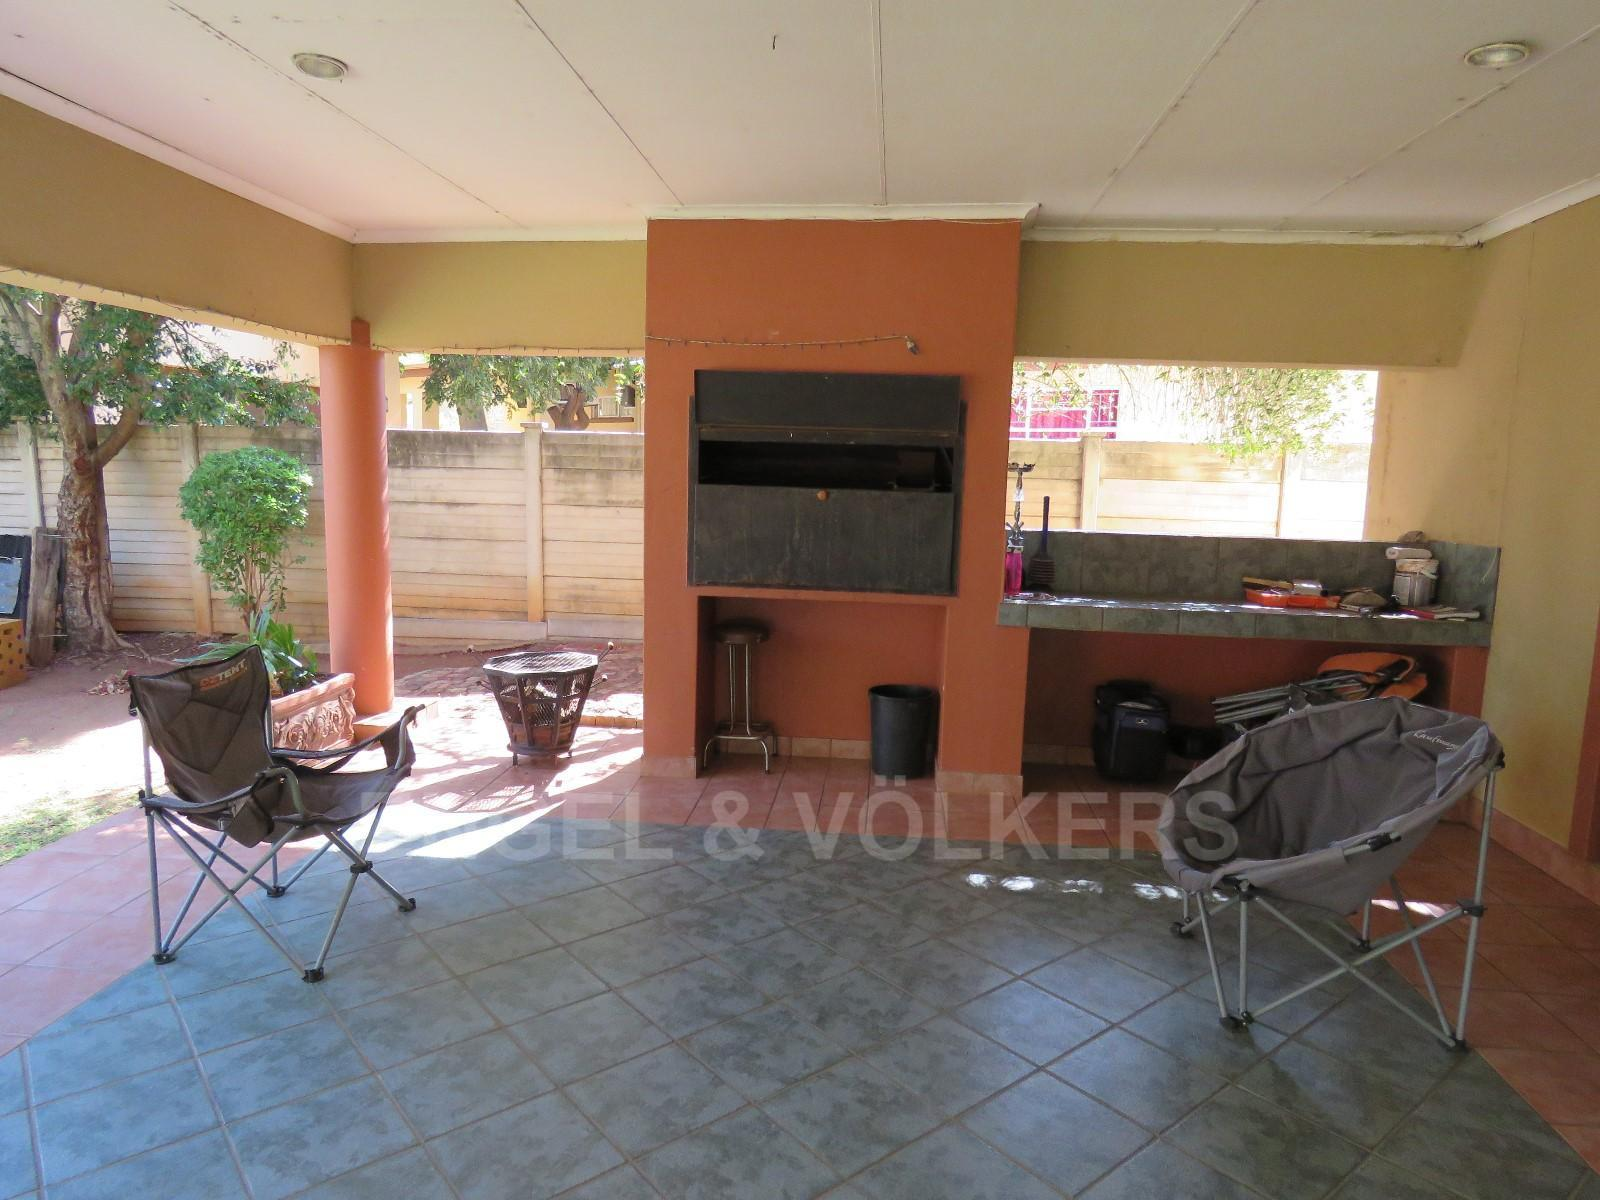 House in Schoemansville - Undercover patio with built-in braai